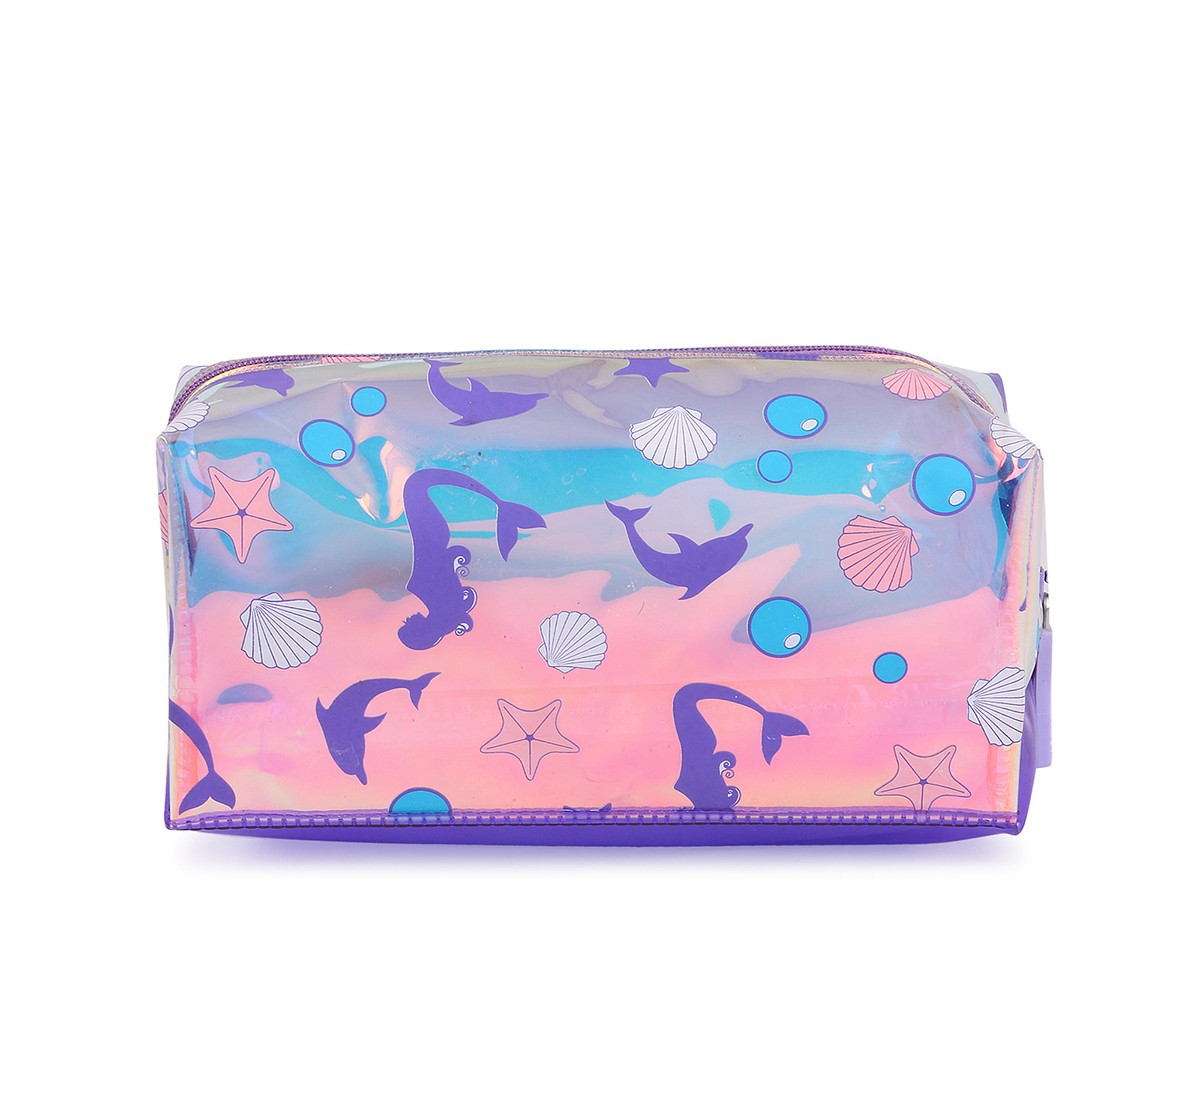 Hamster London Rectangular Mermaid Pouch for Girls age 3Y+ (Purple)